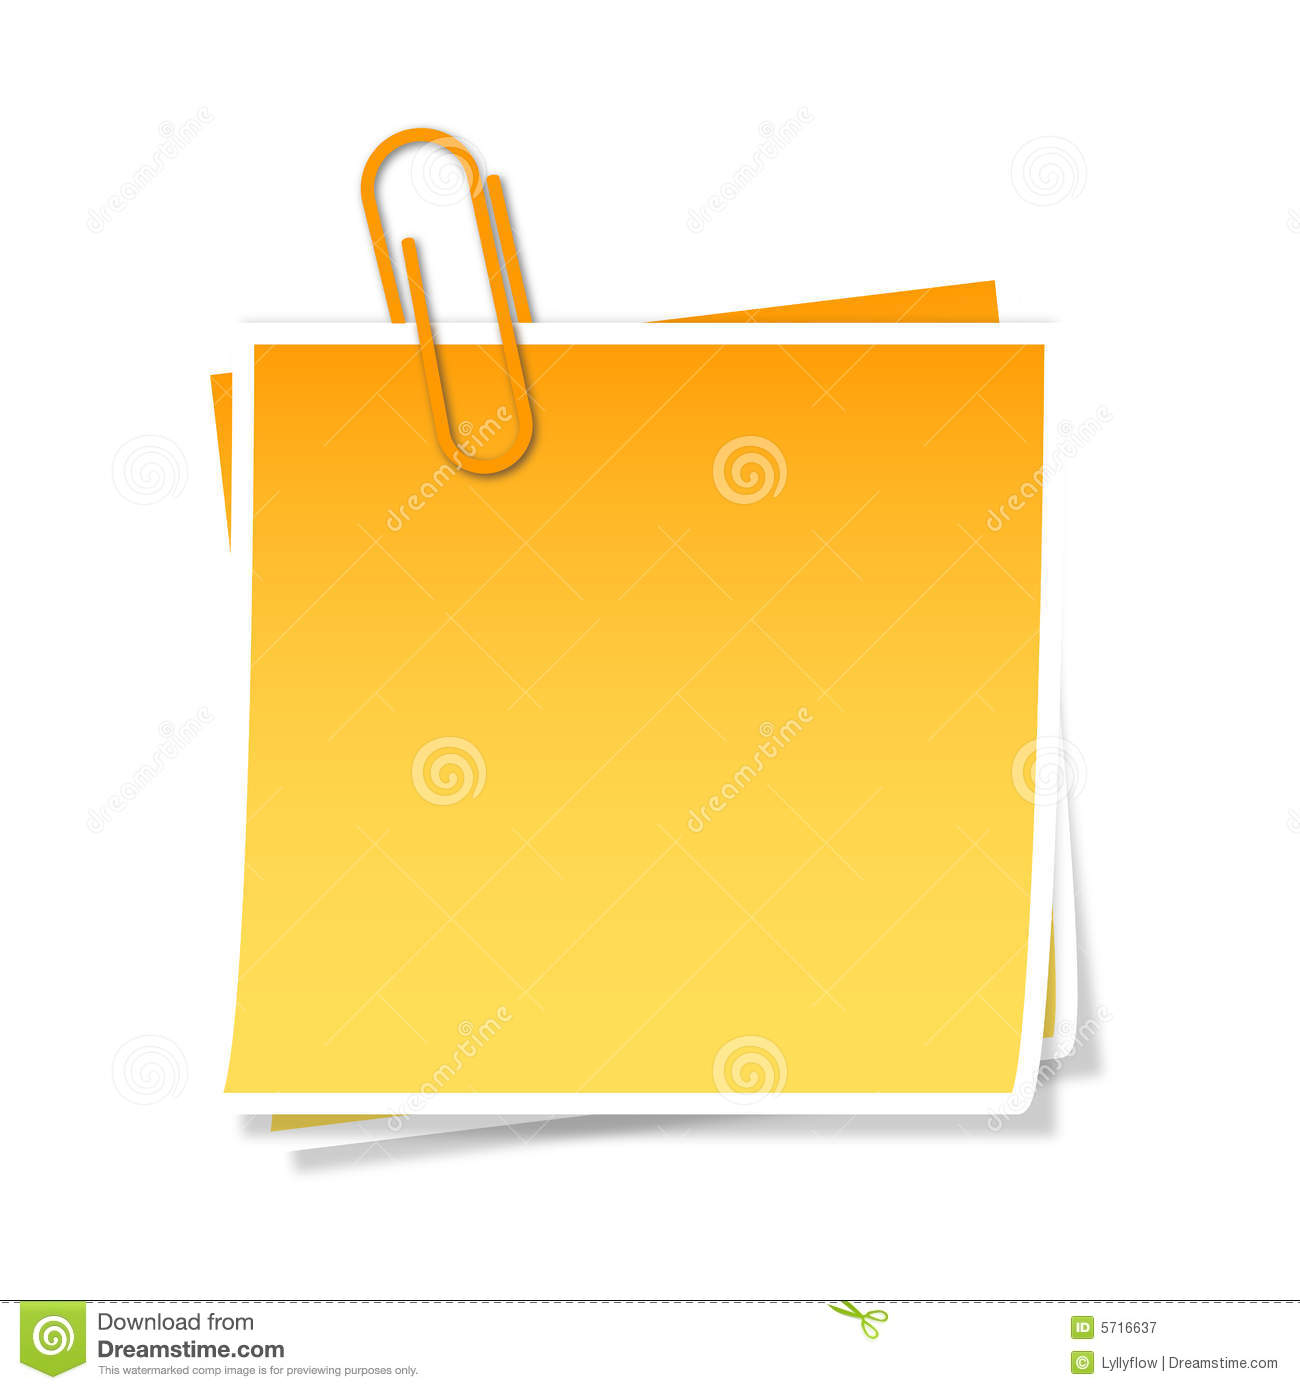 Post: Post-it, Vector Stock Vector. Image Of Blank, Documents